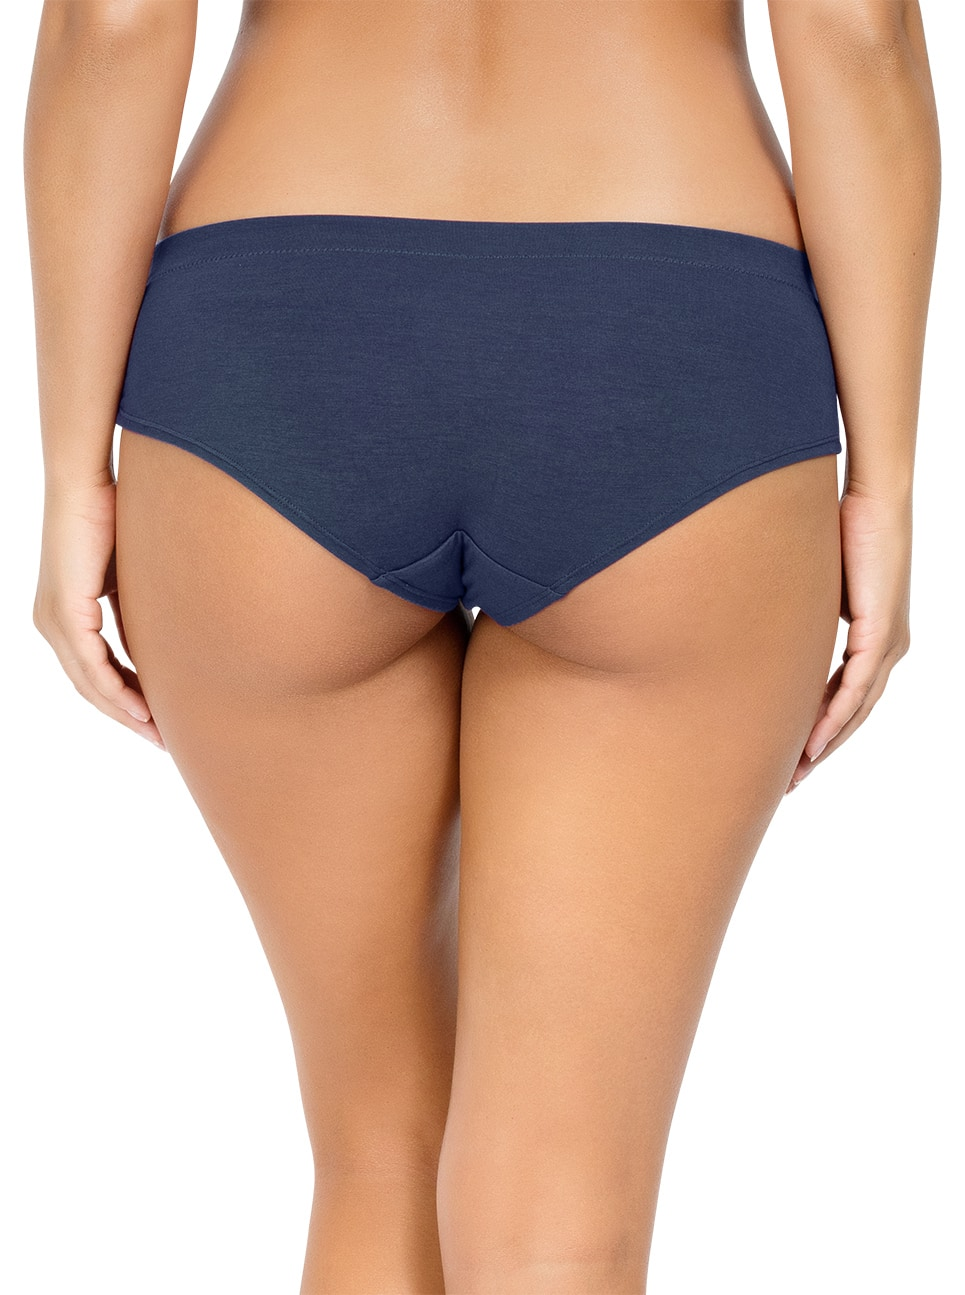 PARFAIT Dalis HipsterP5645 NavyBlue Back - Dalis Hipster - Navy - P5645